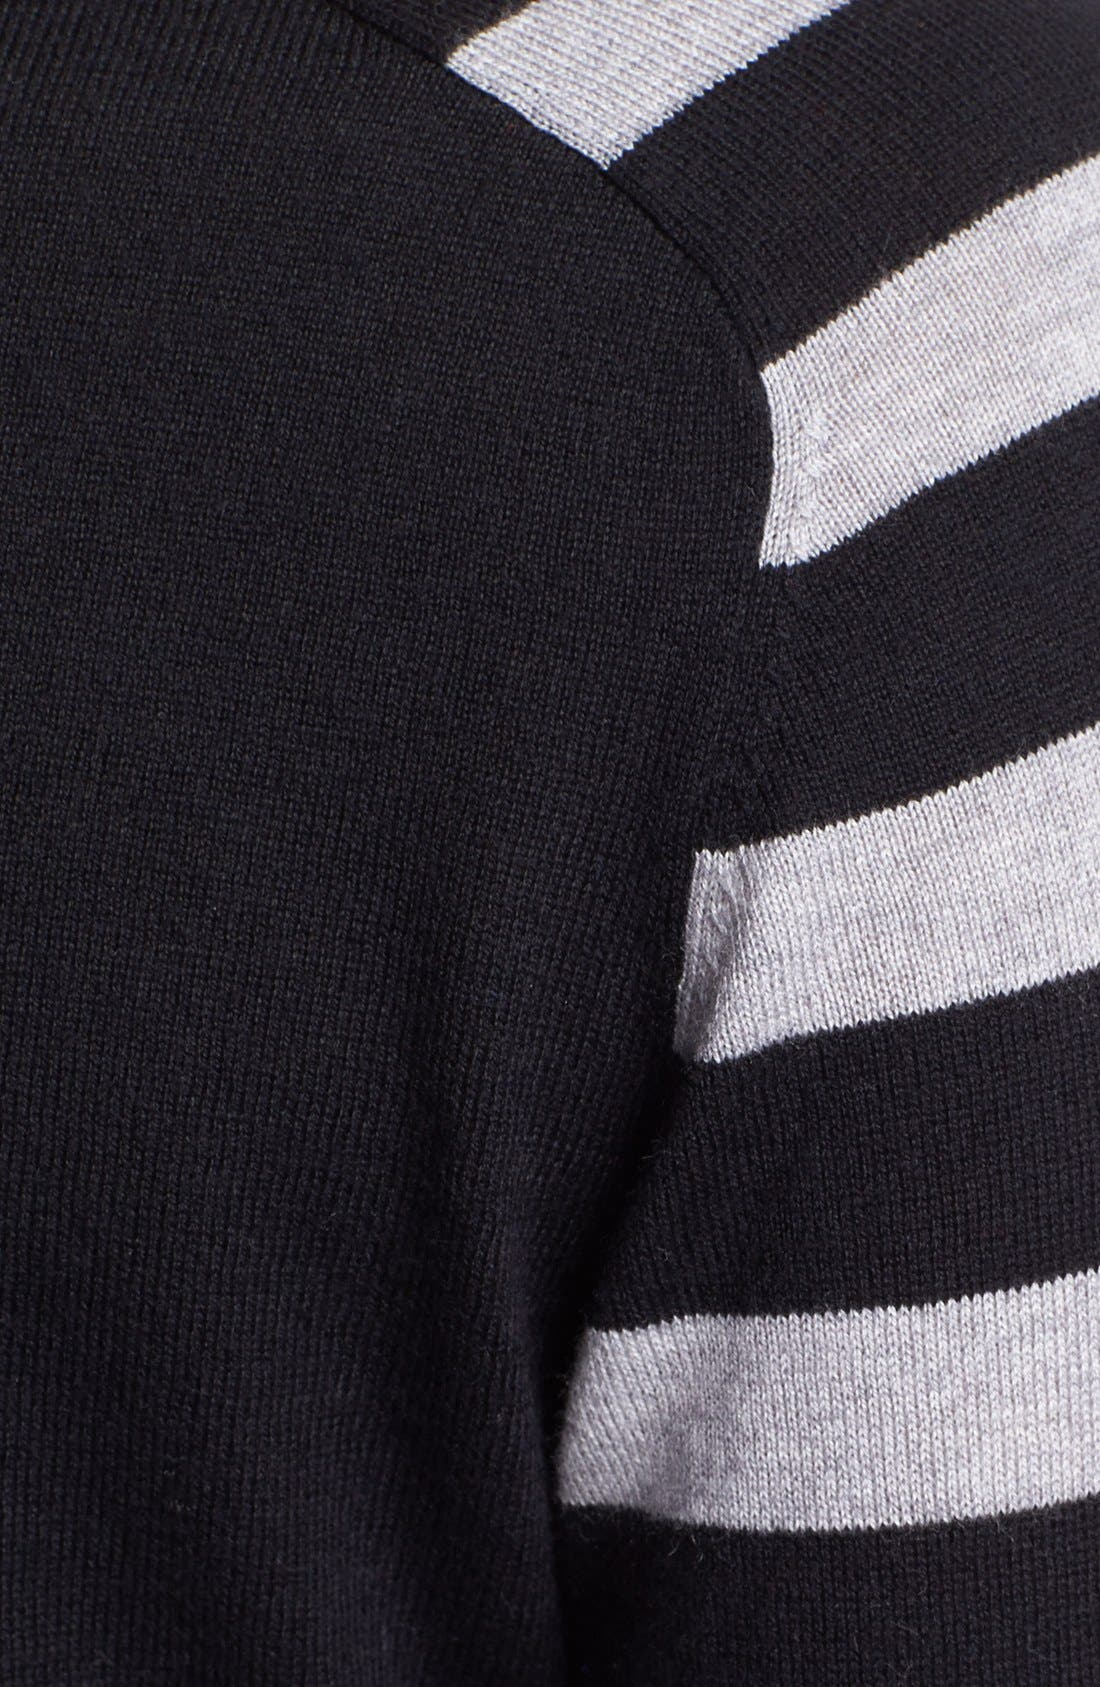 Alternate Image 3  - Vince Camuto Mixed Stripe Colorblock Sweater